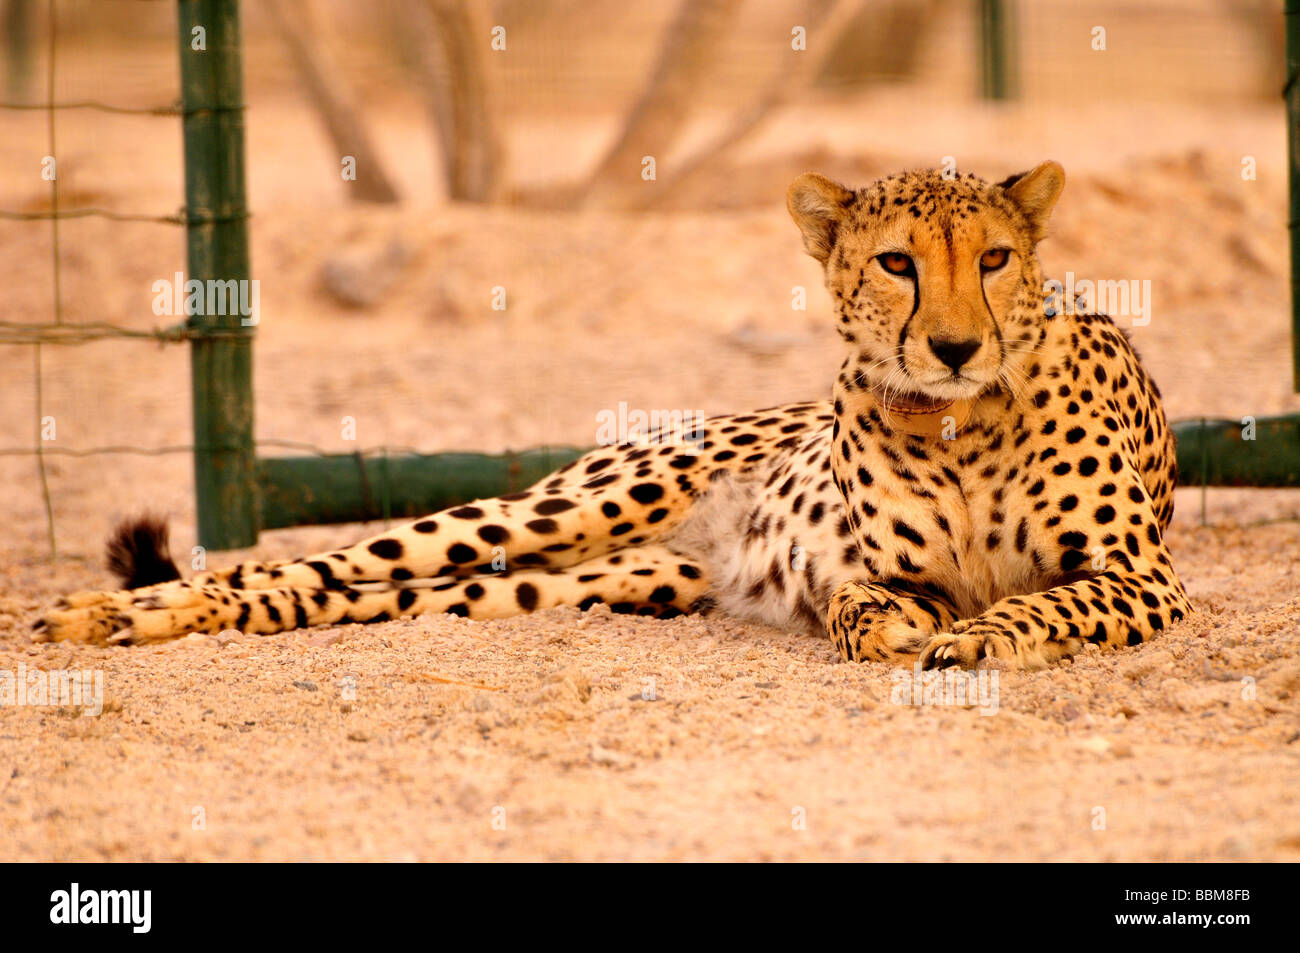 Cheetah (Acinonyx jubatus soemmerring), in a vivarium, Sir Bani Yas Island, Abu Dhabi, United Arab Emirates, Arabia, Stock Photo